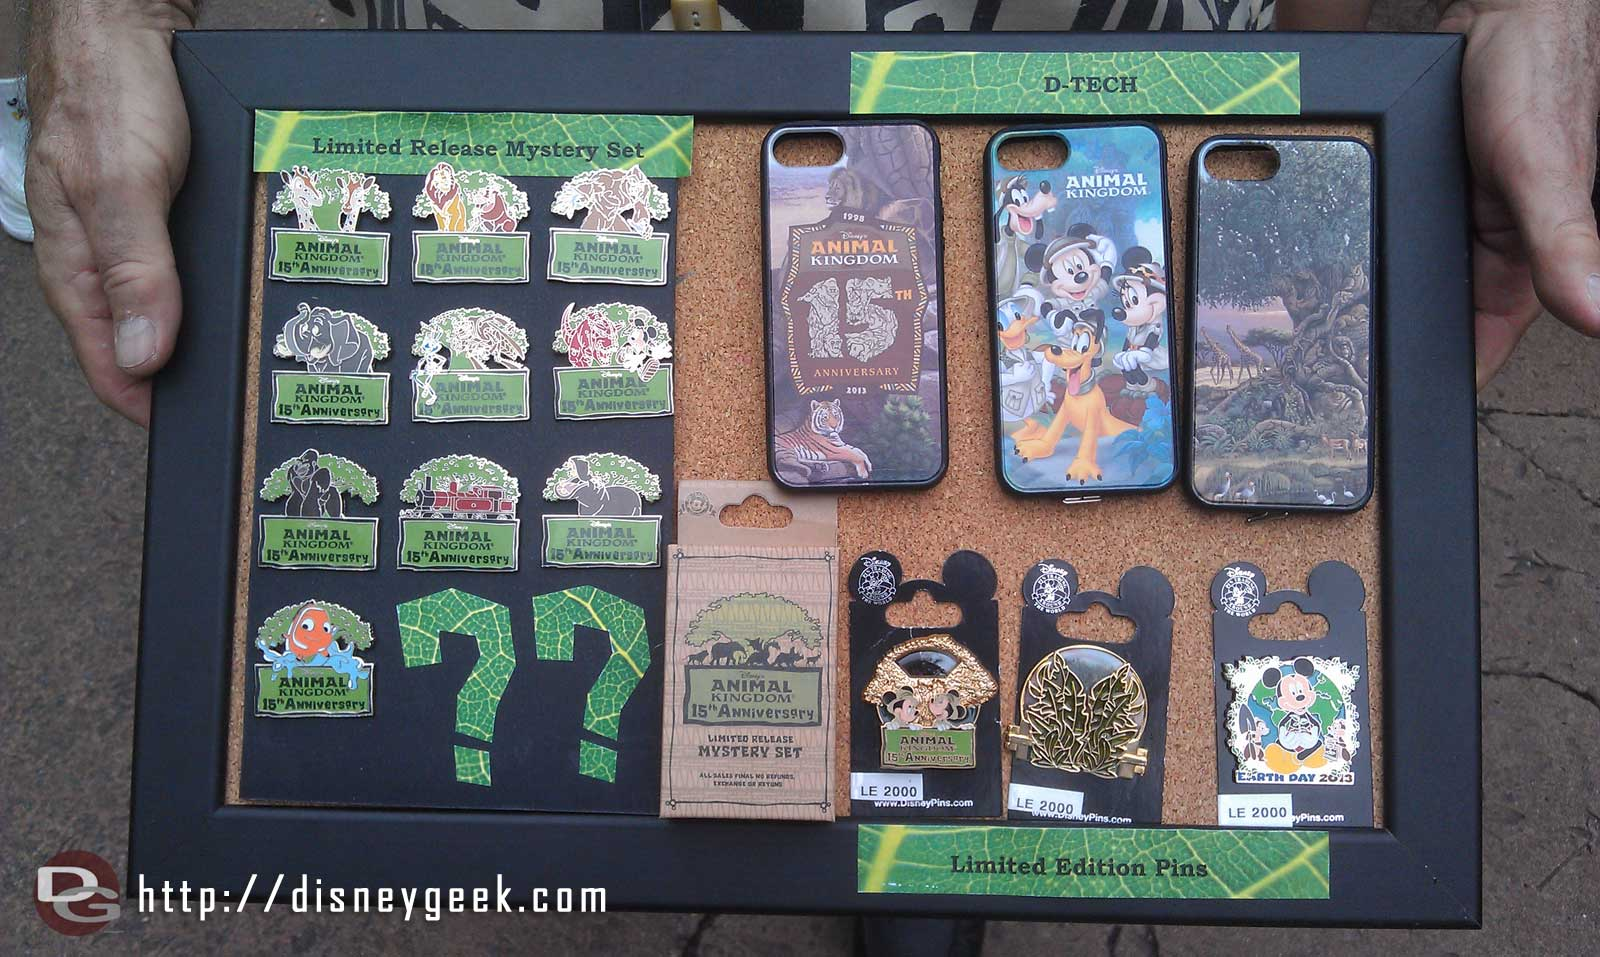 Some of the #DAK15 merchandise(pins and iPhone cases) that is/was available